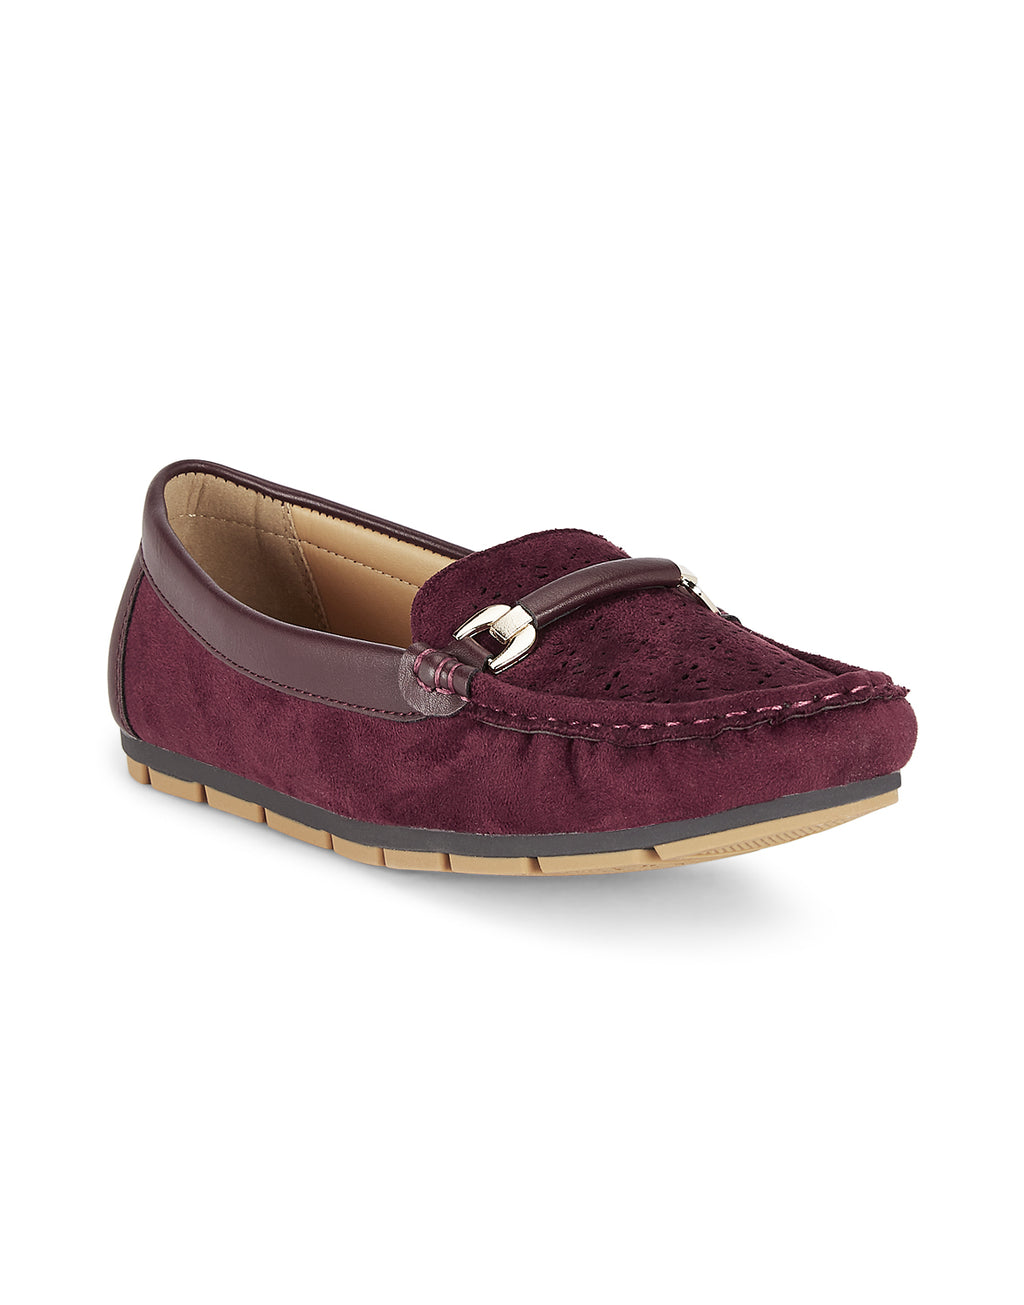 Adaline Burgundy Loafers